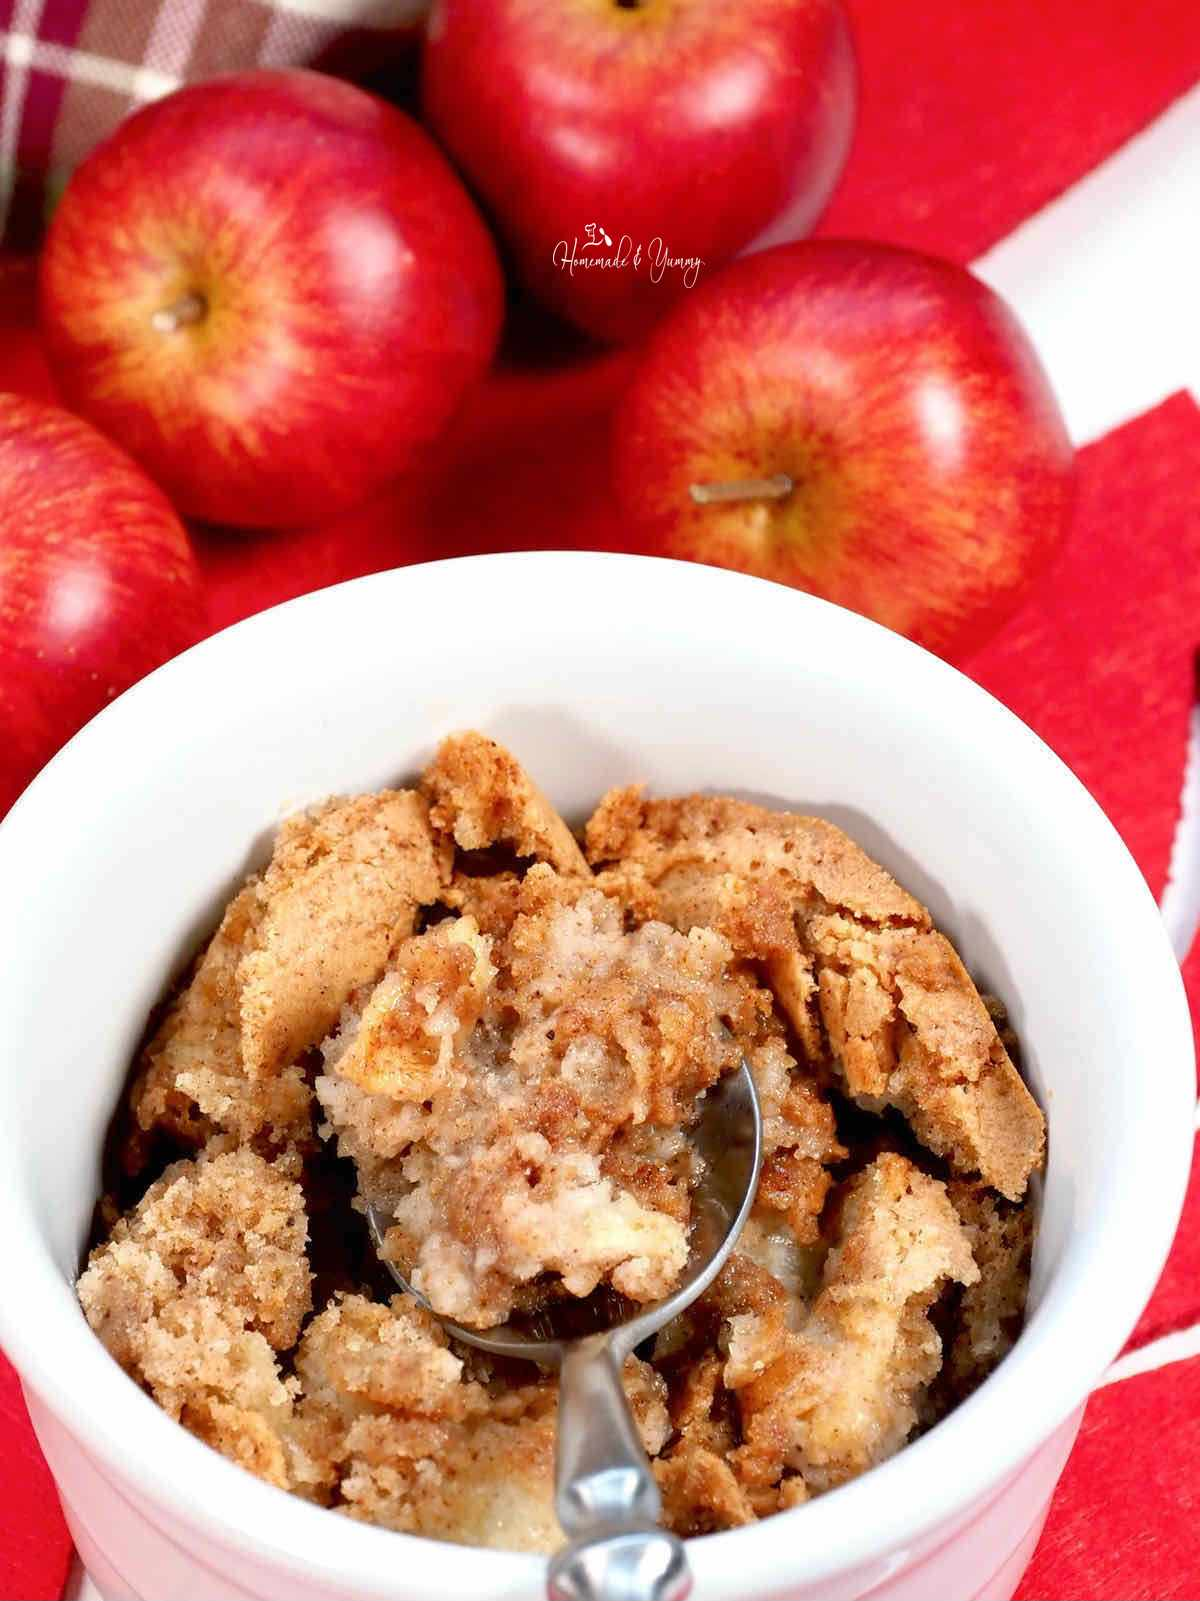 A spoonful of old fashioned apple pudding.